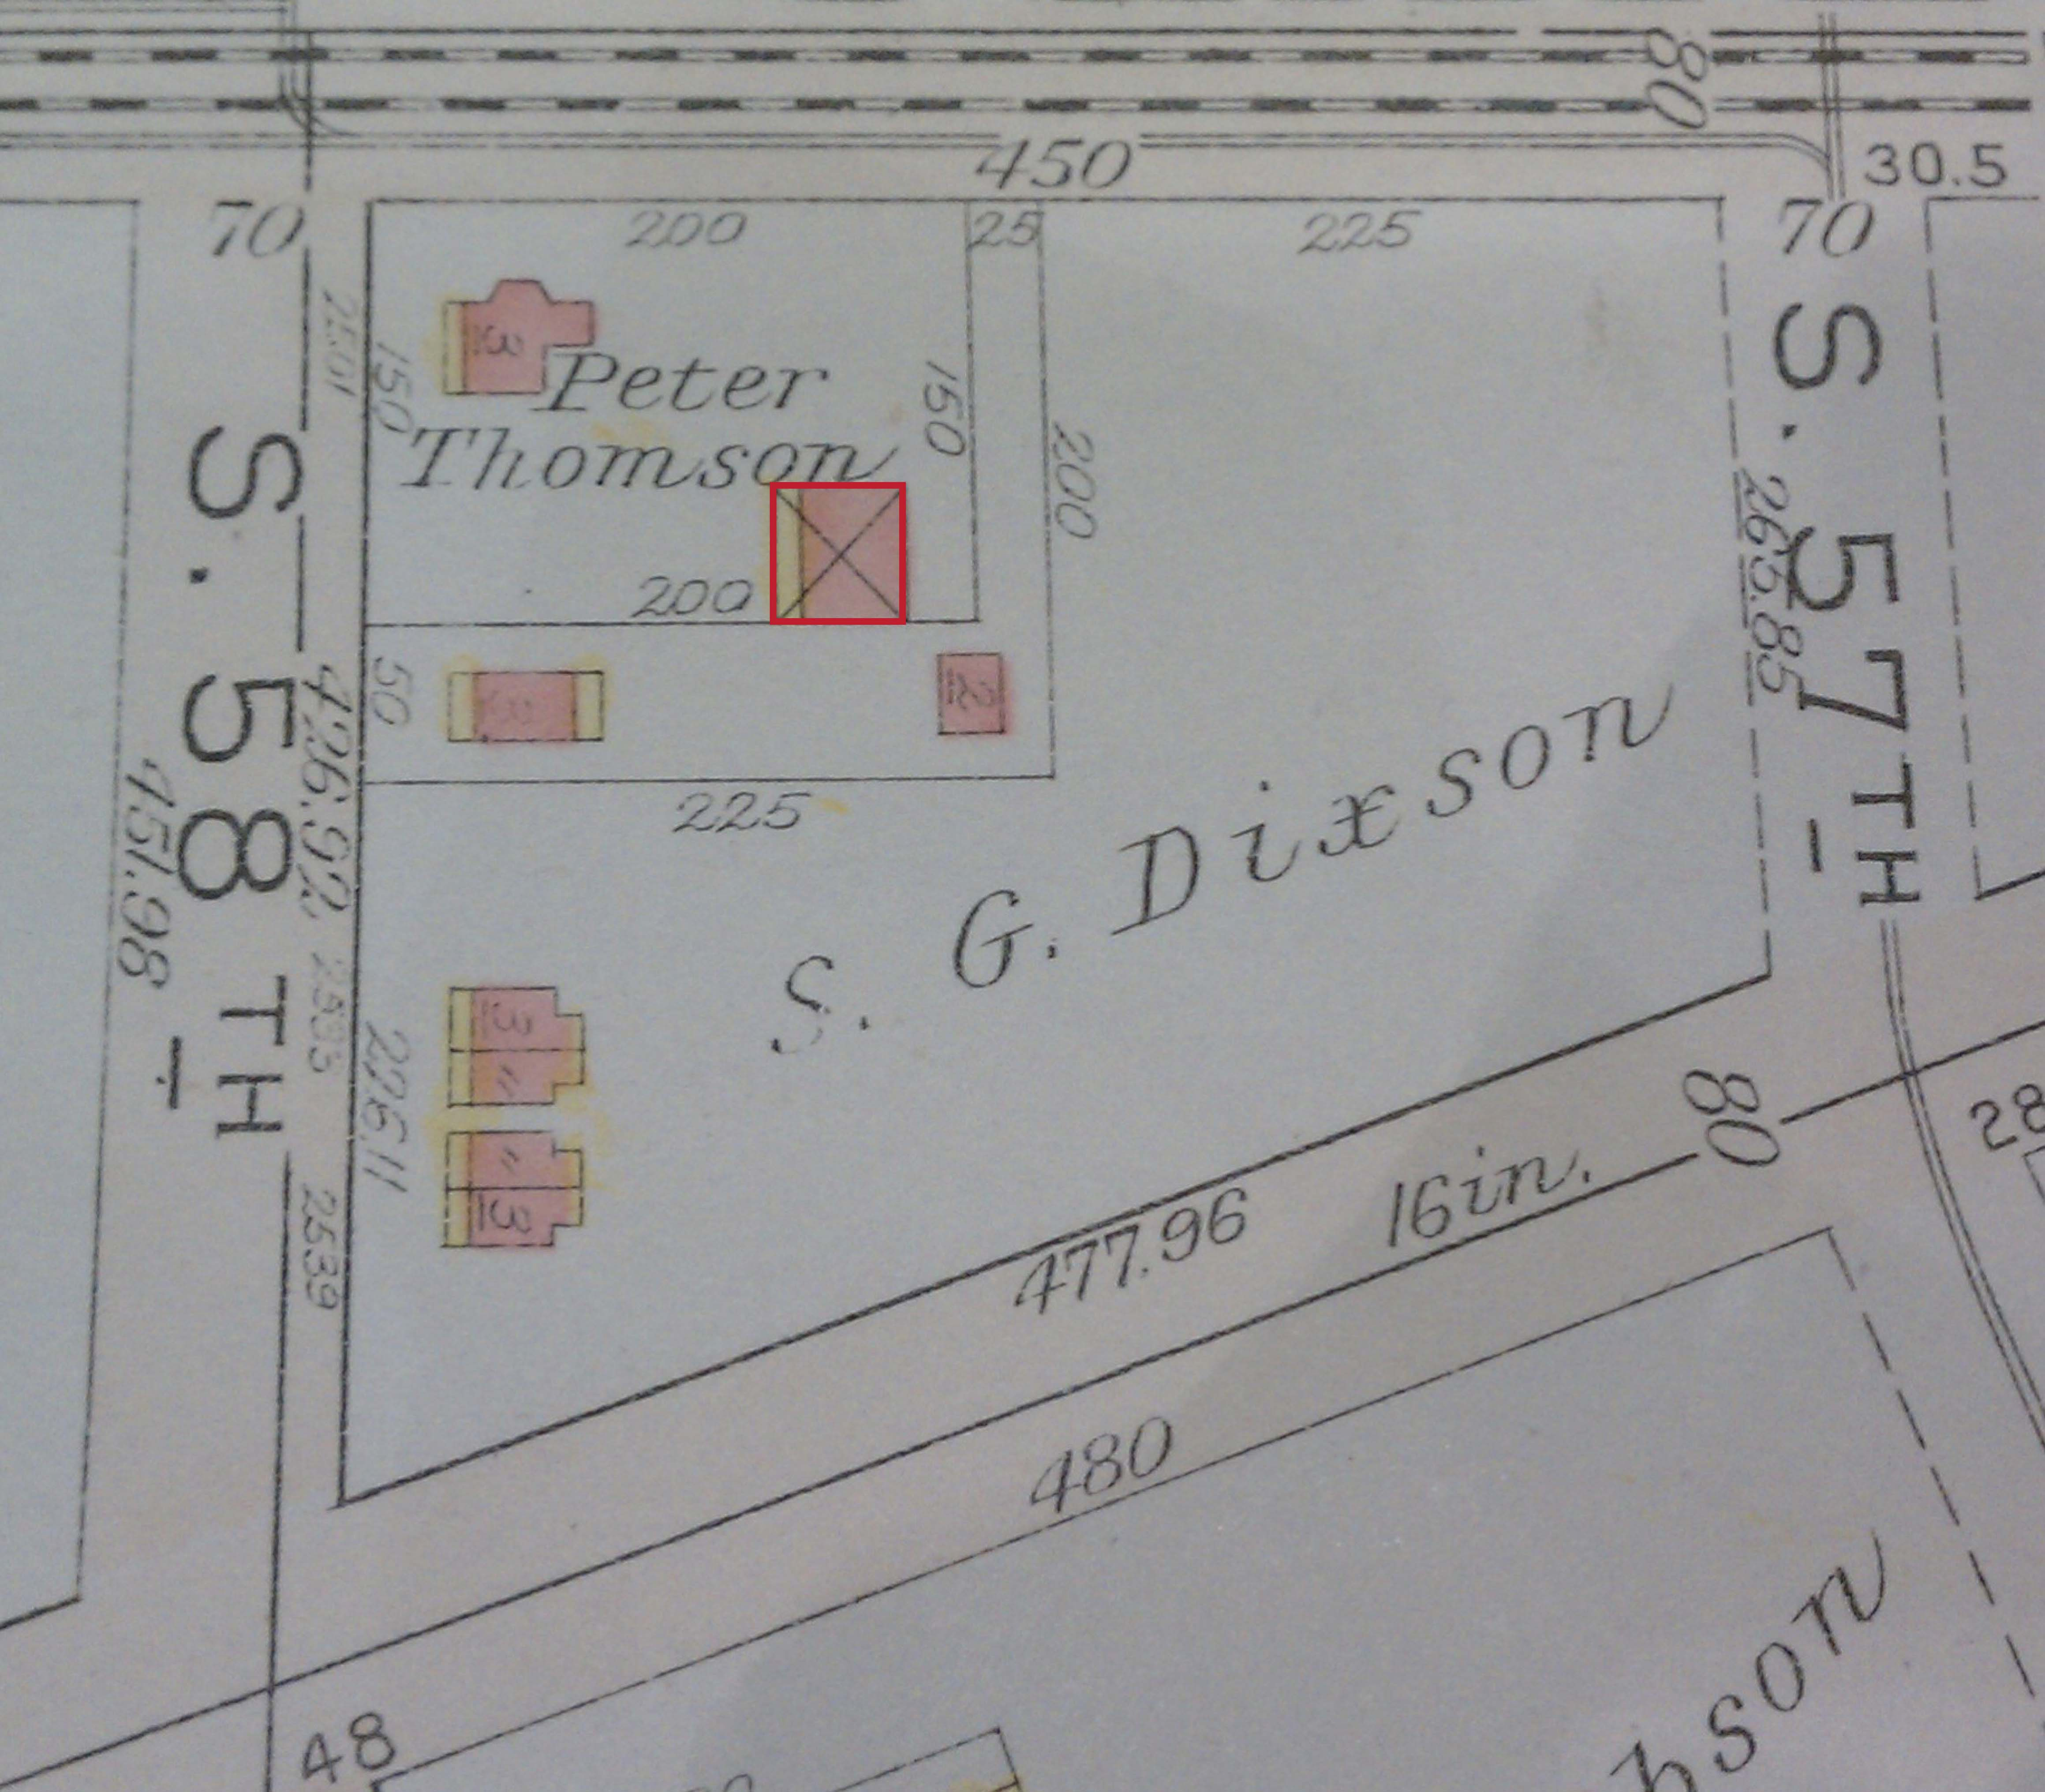 1918 Bromley map - The new auto house is highlighted in red.